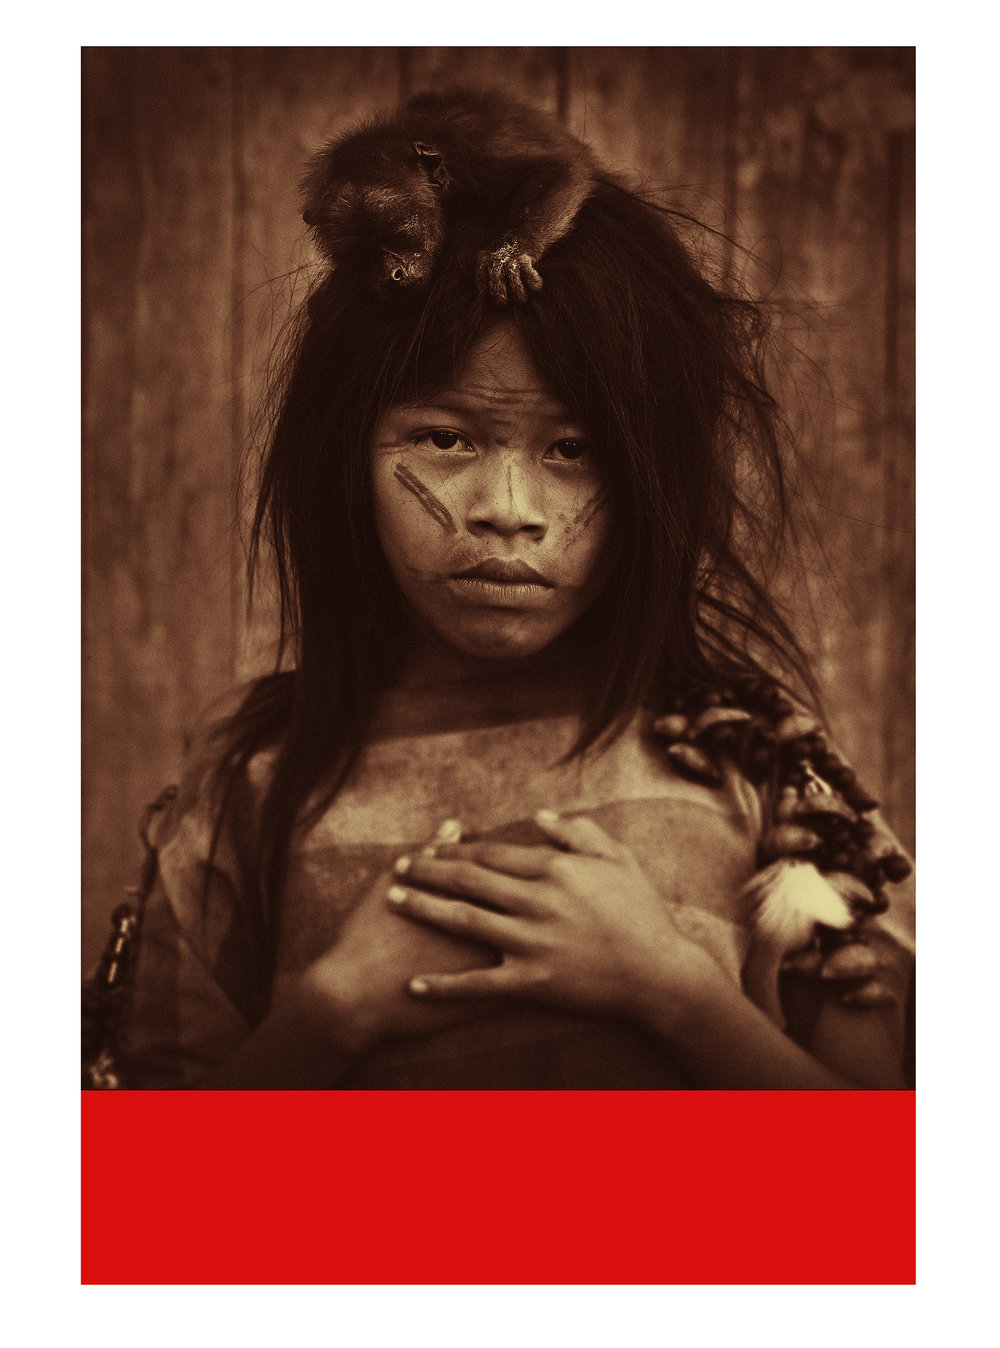 Dalia / Daughter of the rainforest  Photolitho / IDEM PARIS/ BFK Rives 250 gr 118  x 160 cm / 46,5 x 63  in Edition of 15 + 5 Ap Editeur: IDEM PARIS / Per Fronth   19/2016: